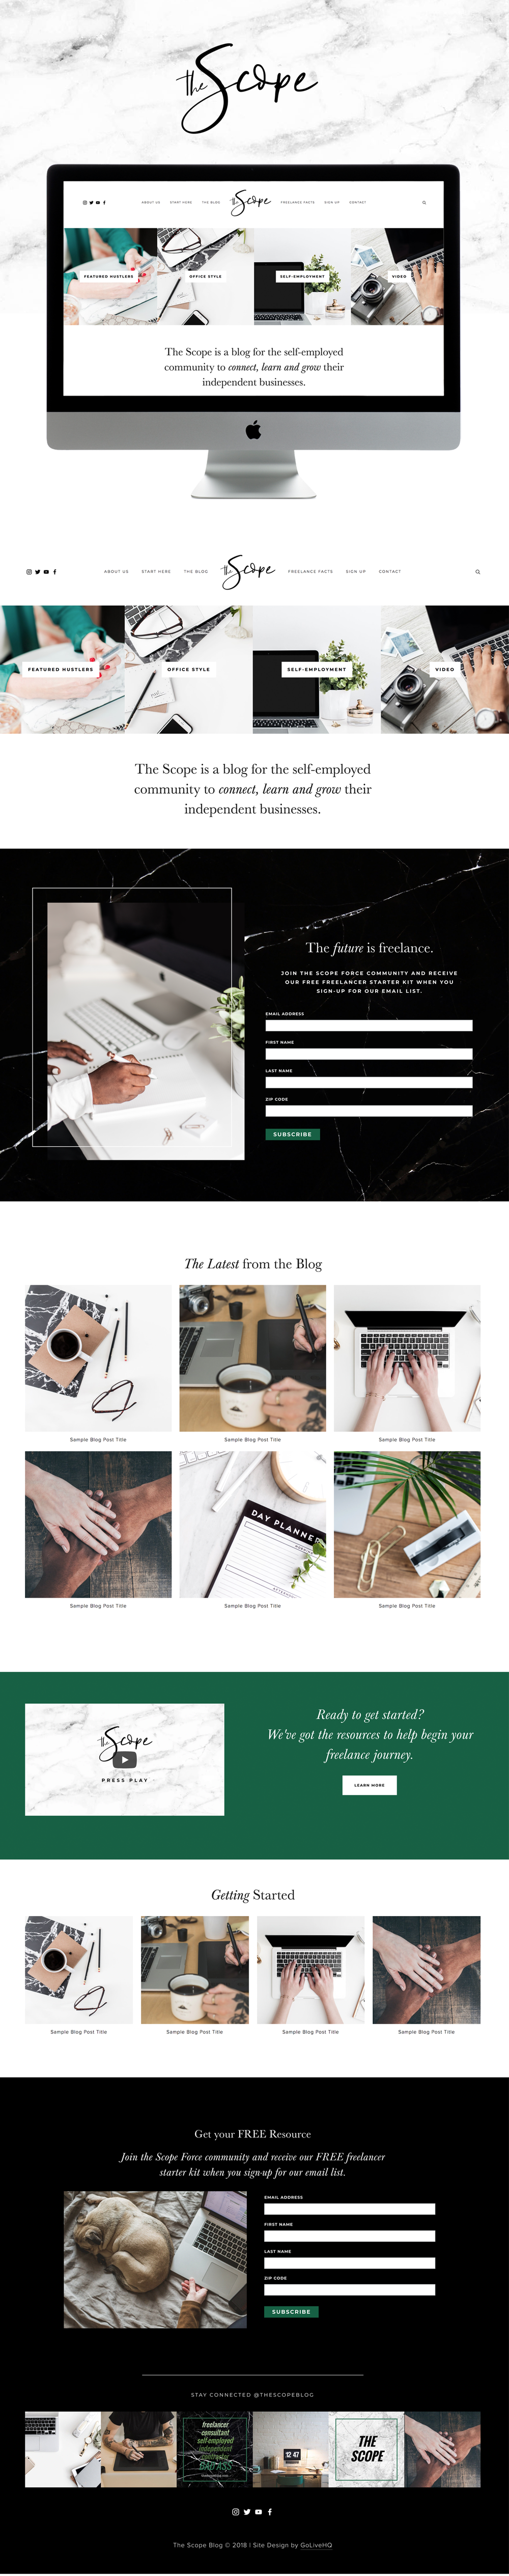 Modern, Professional Website Design for Business | Design by Go Live HQ